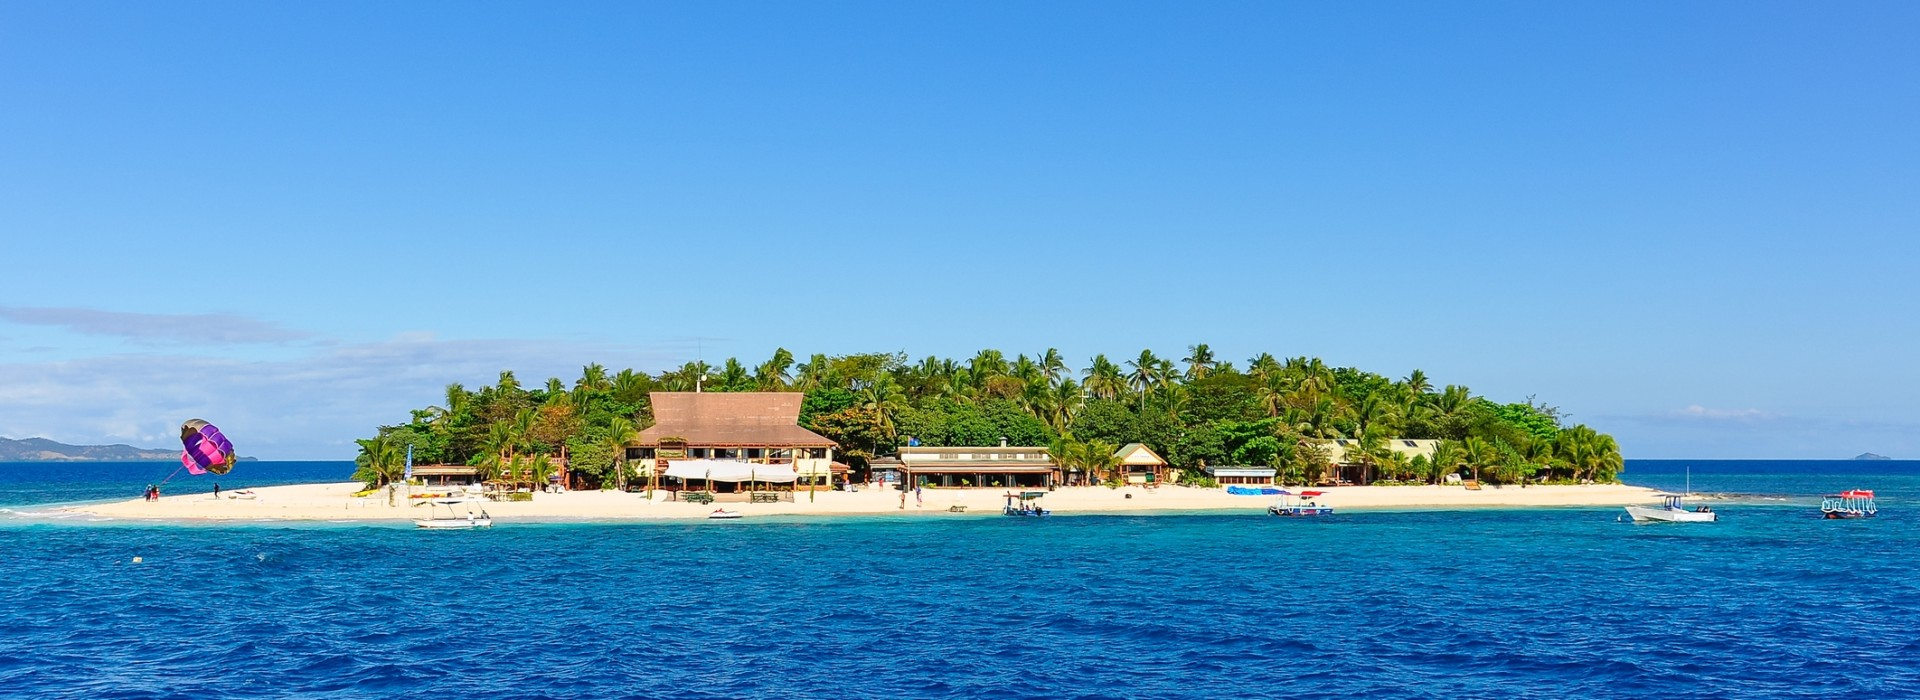 Travelling Fiji - Tours and Trips in Fiji